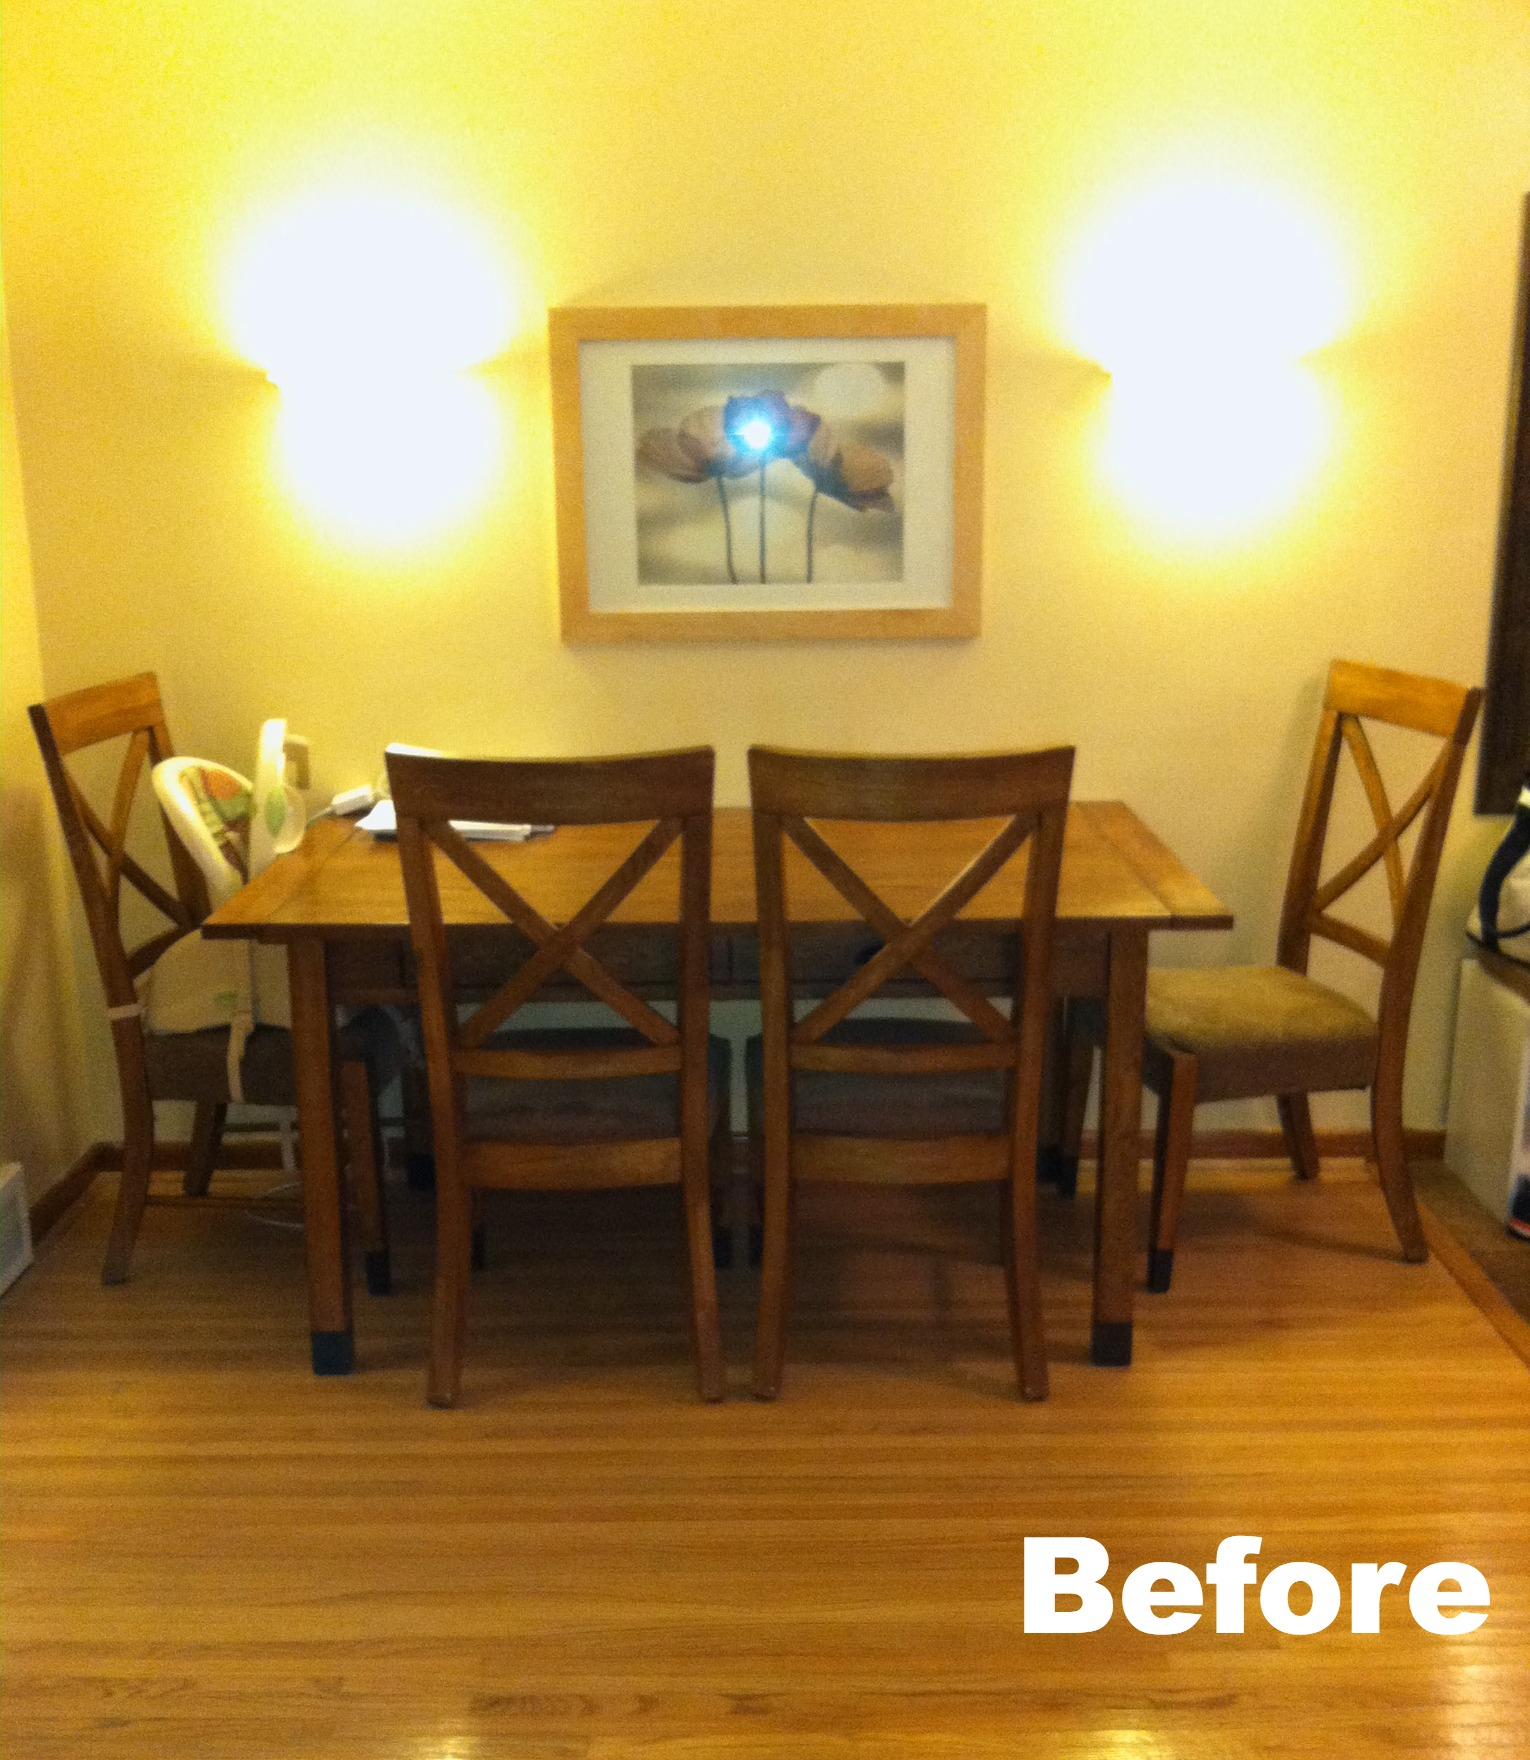 https://www.classyclutter.net/wp-content/uploads/2013/05/Dining-room-BEFORE.jpg.jpg